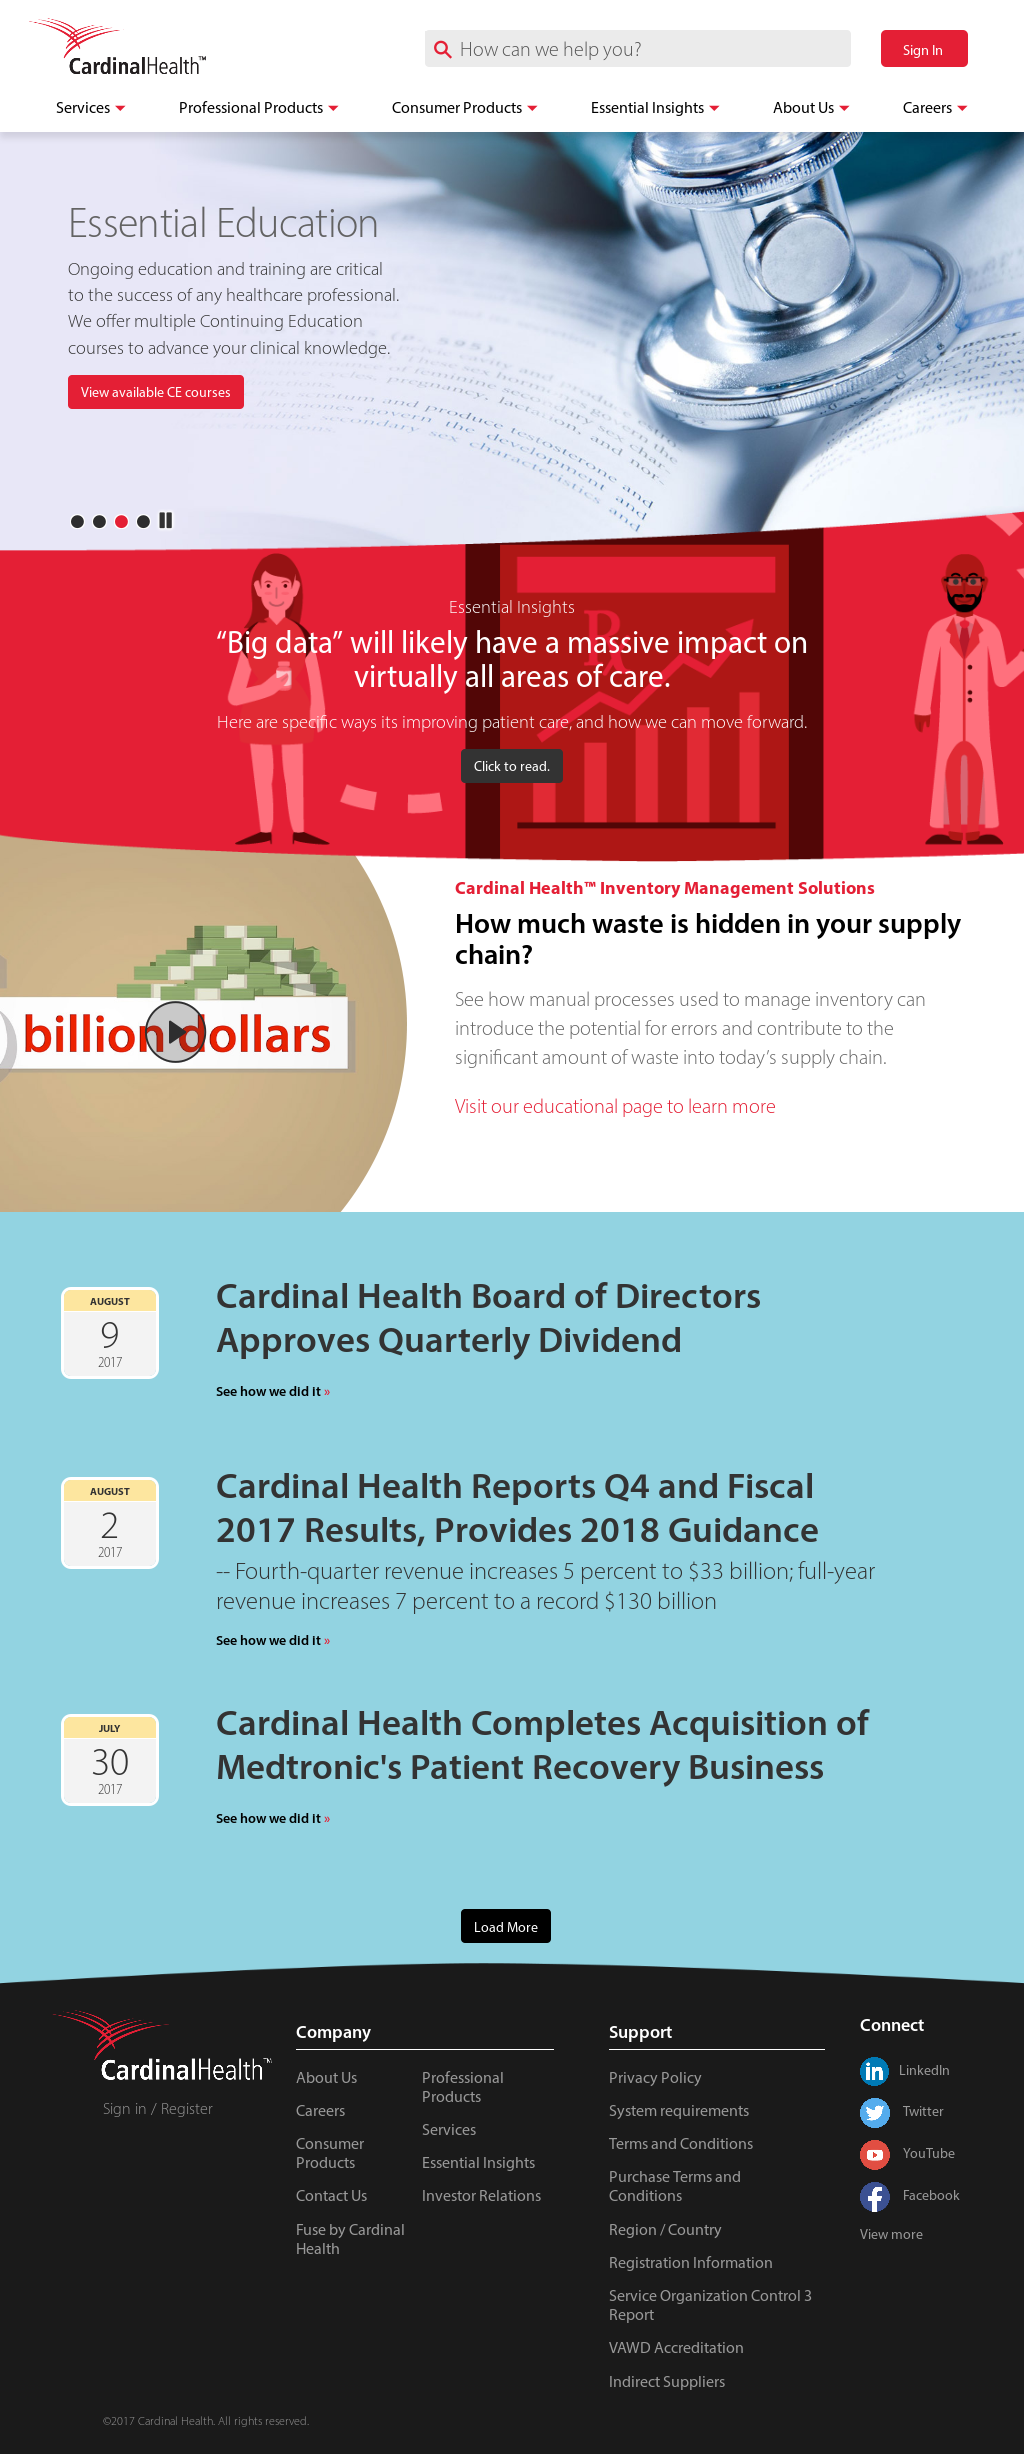 Cardinalhealth Competitors, Revenue and Employees - Owler